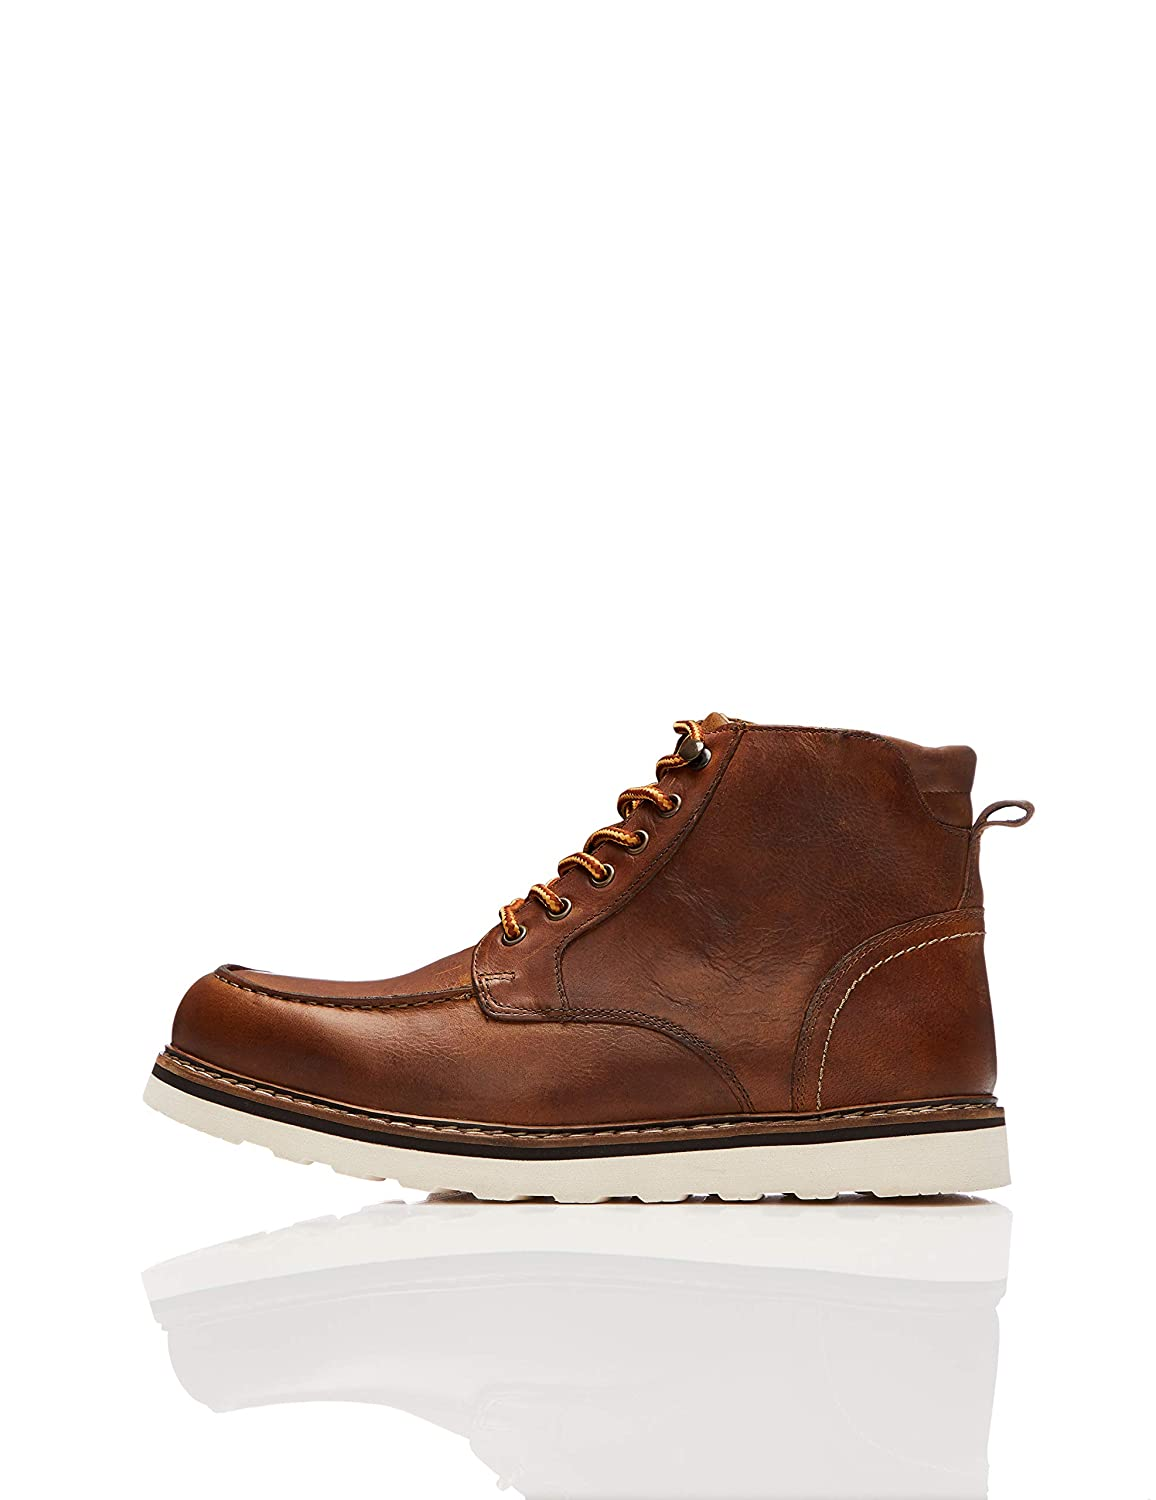 TALLA 45 EU. find. Leather Apron, Botas Chukka Hombre